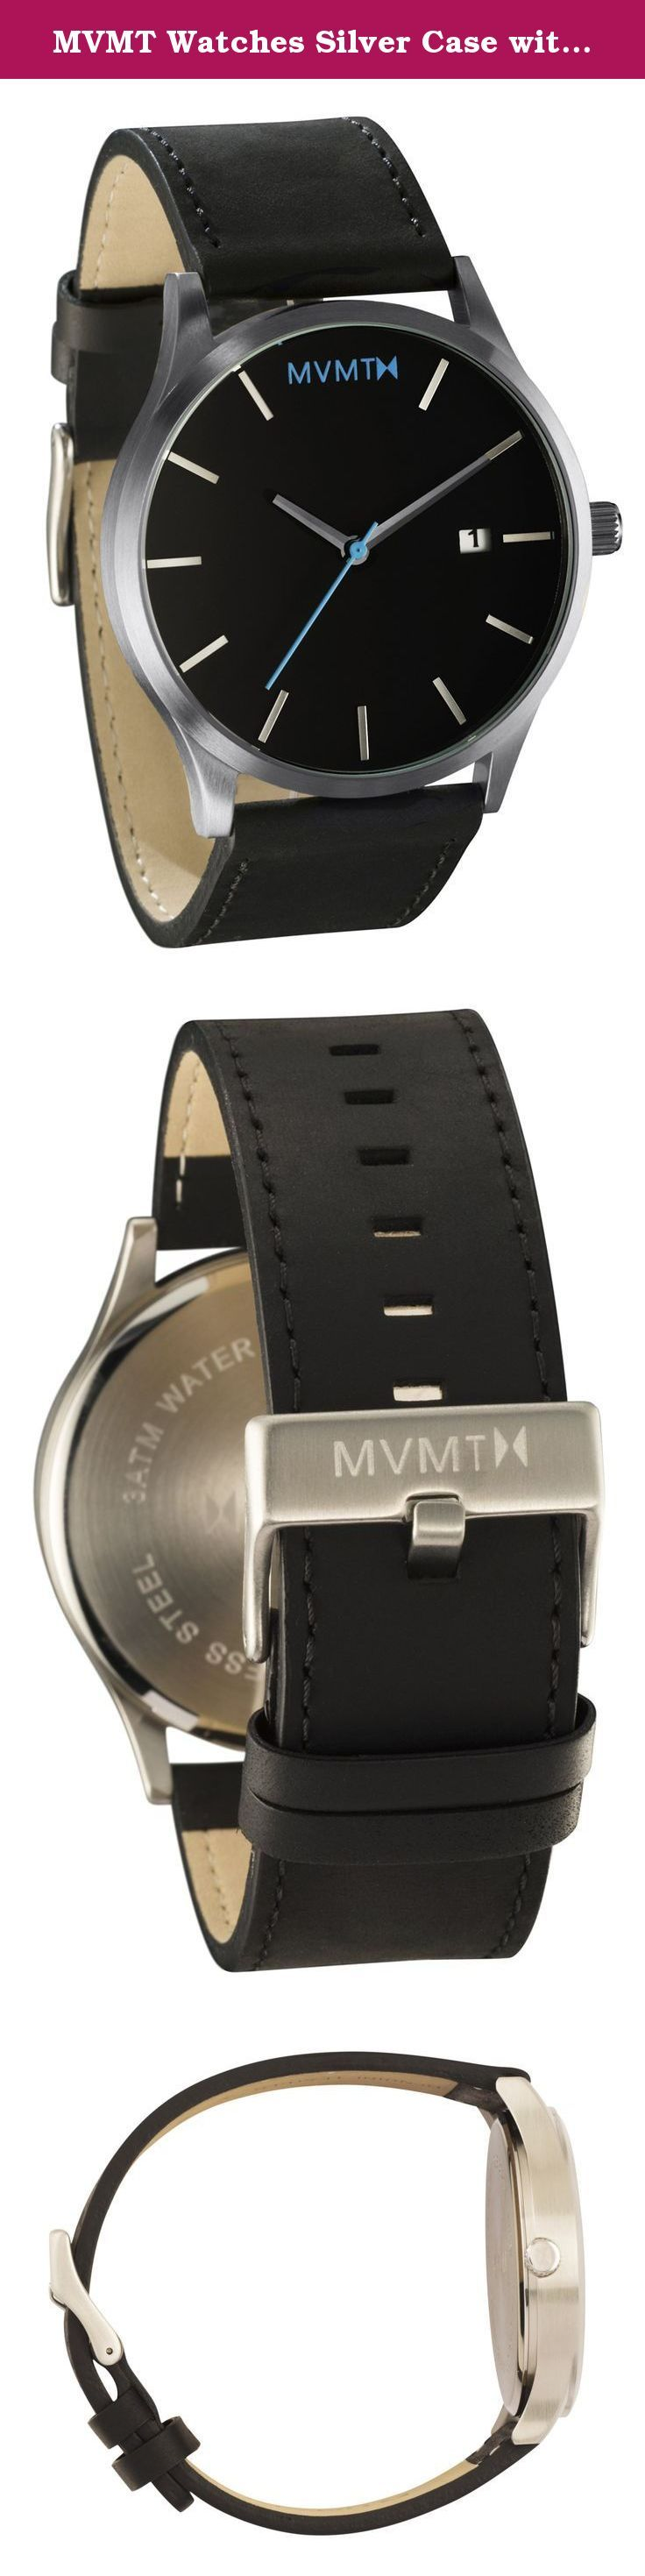 MVMT Watches Silver Case with Black Leather Strap Men's Watch. Our team sought out to create MVMT because of our passion for watches and desire to cut out the brand inflation and retail markup of popular name brands. We got frustrated paying hundreds of dollars for name brand watches, knowing they only cost a fraction of the price to make. When designing this watch collection, we made sure of THREE details: 1. A minimalist look that could be worn in a casual or professional setting. 2…